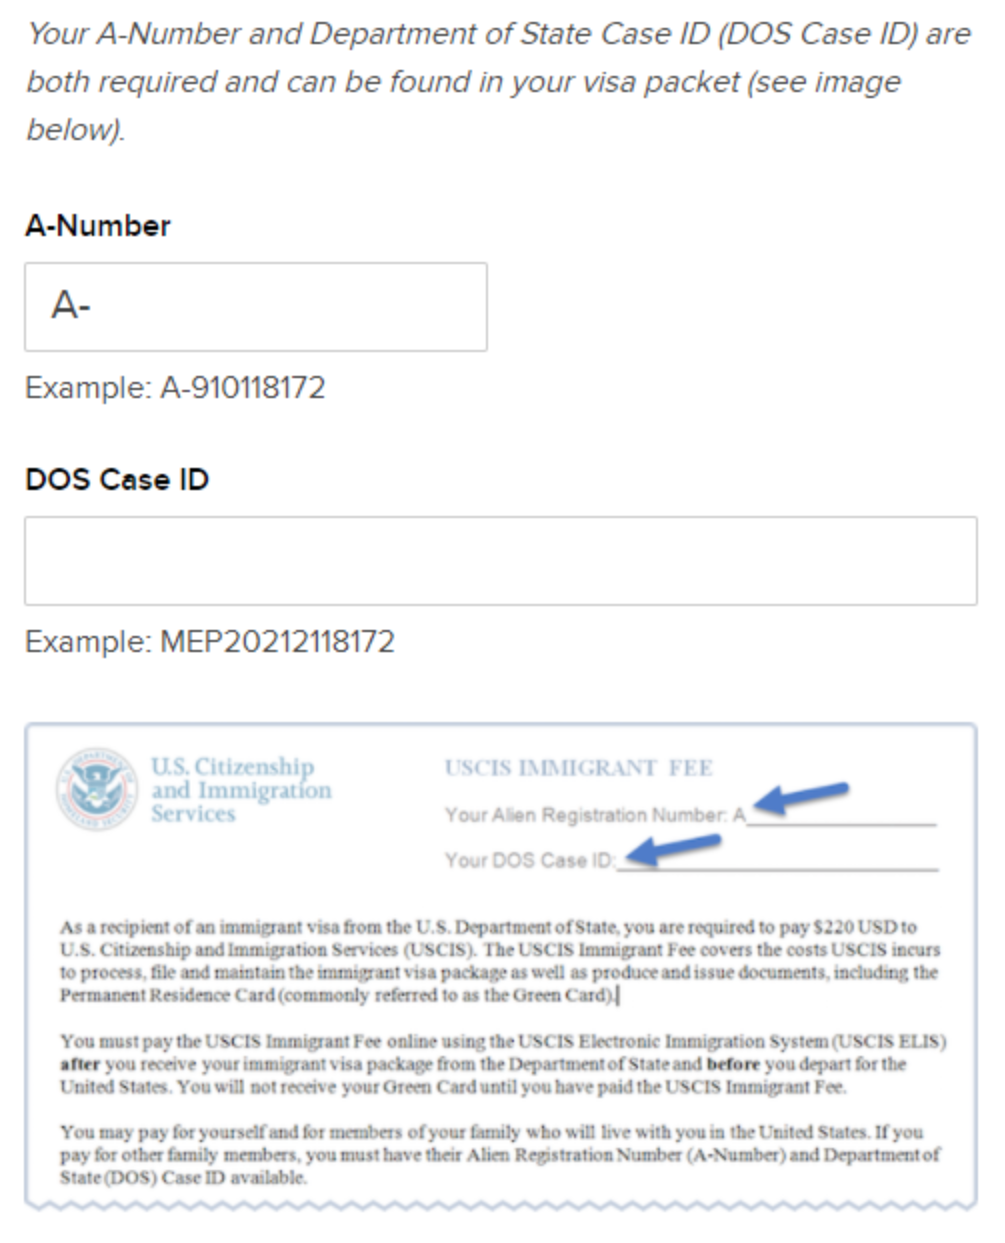 The alien registration number on an immigrant data summary